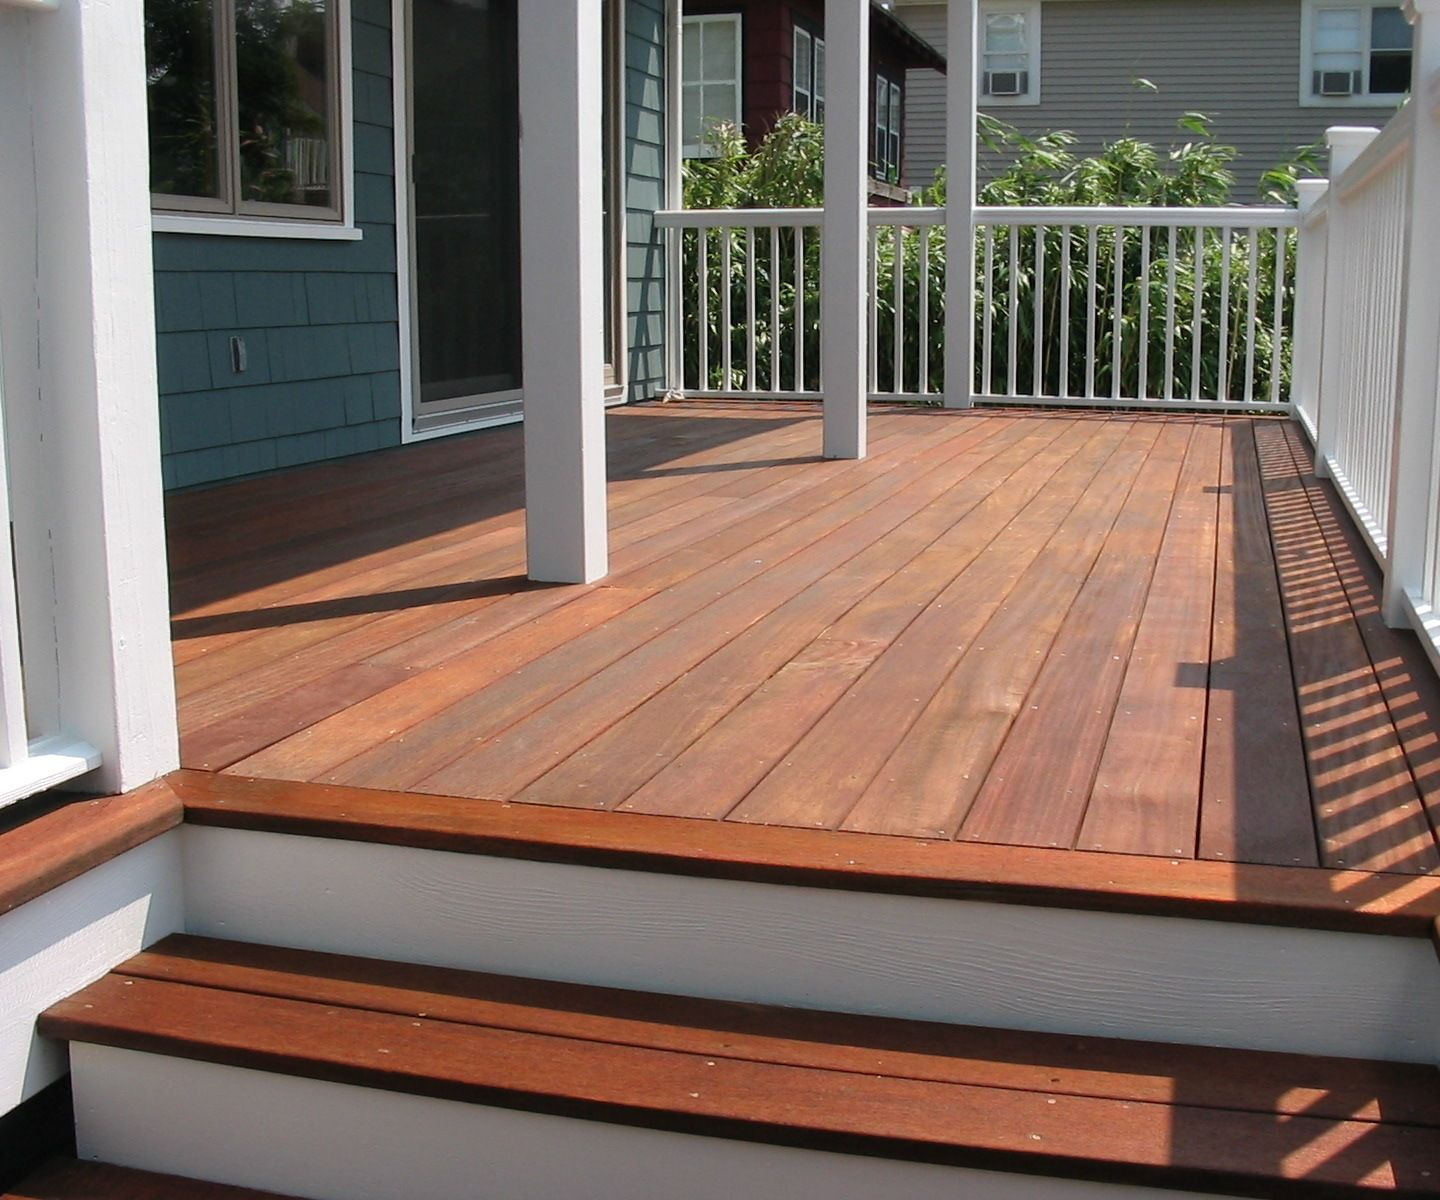 Porch Vs Deck Which Is The More Befitting For Your Home: Semi-Transparent Stains Vs. Solid Stains